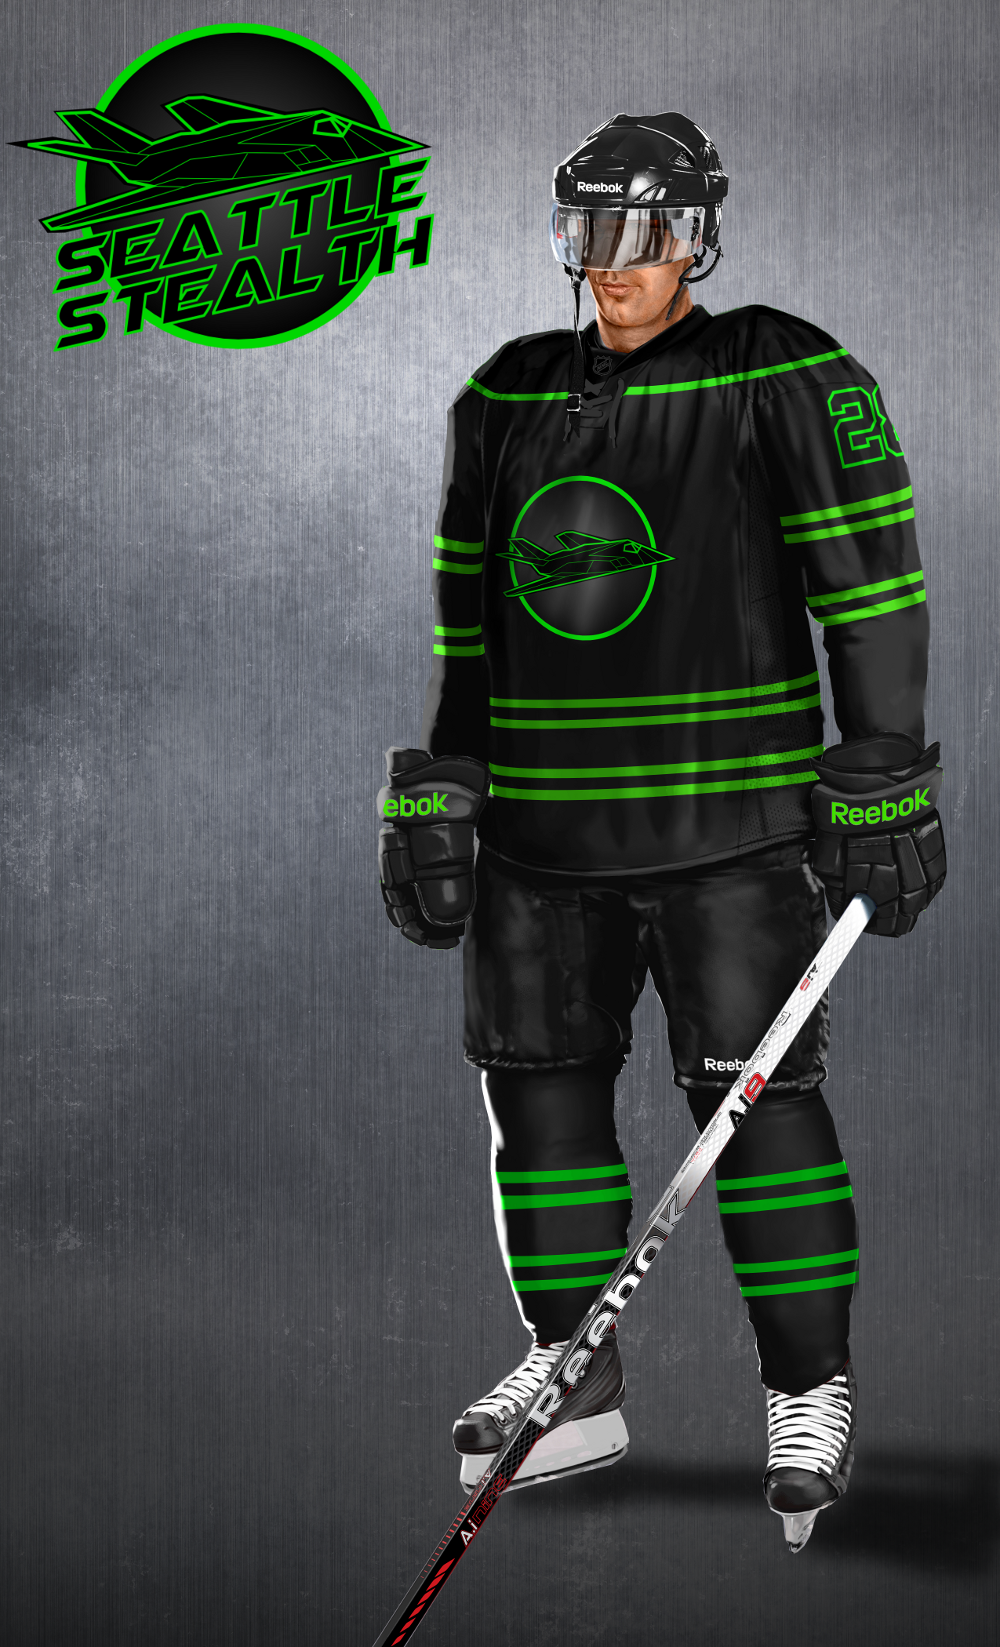 NHL Concept - Seattle Stealth - Concepts - Chris Creamer s Sports ... a0b4b0064